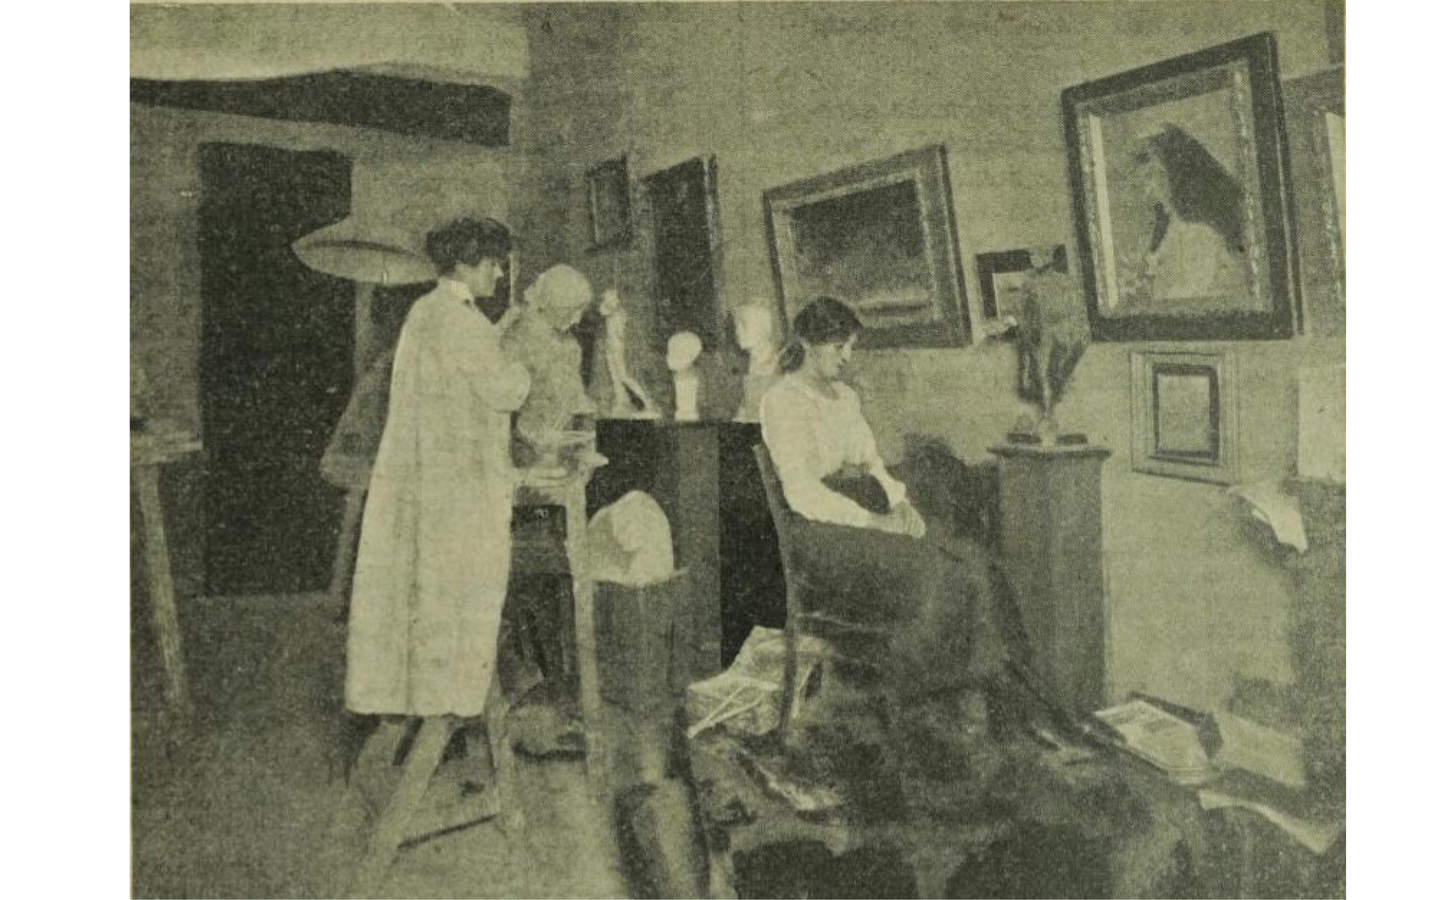 Black and white photograph of an artist in her studio surrounded by paintings and sculptures. The artist wears a white smock and stands on a ladder next to a sculpture while her model is seated in front of her.